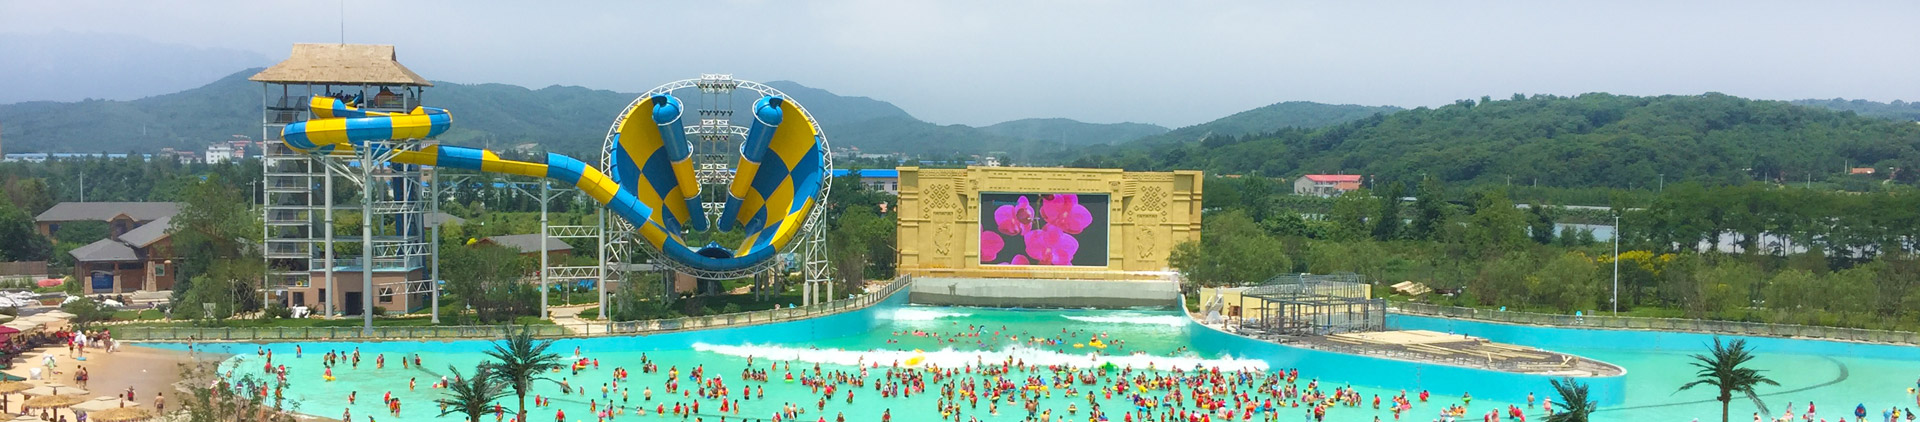 Our Sea Water Park in Zhejiang Ningbo